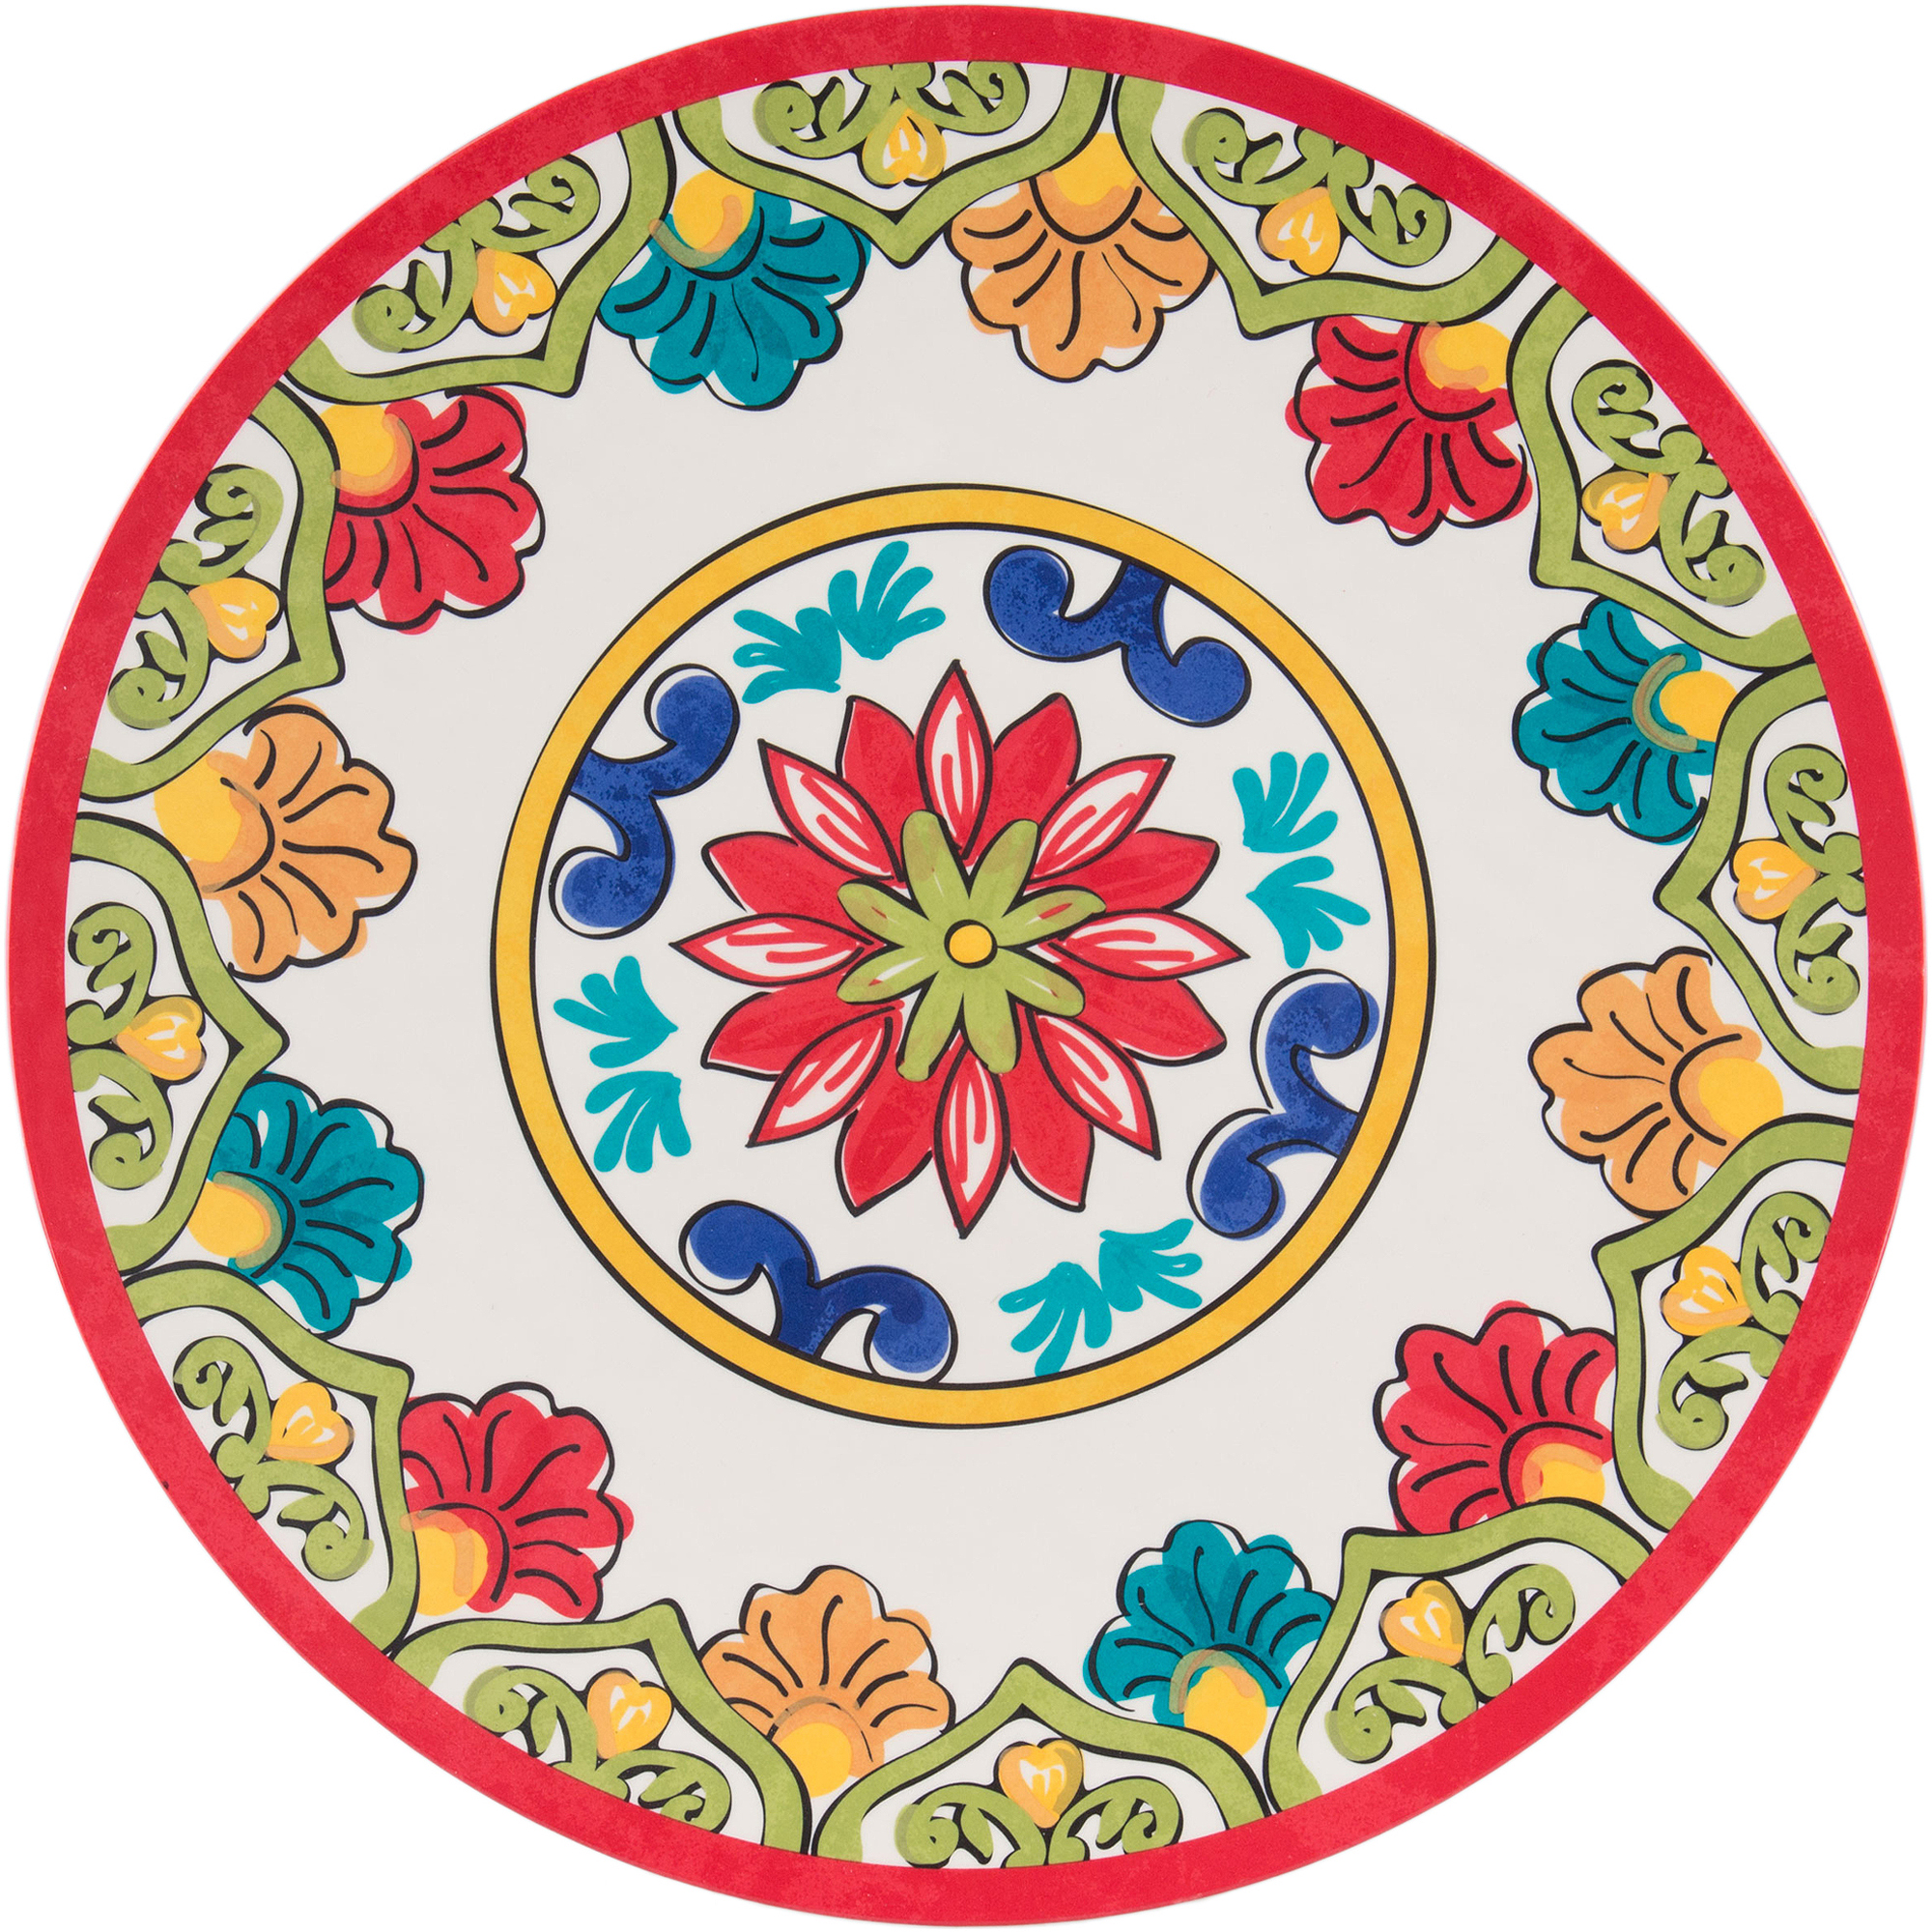 "Better Homes and Gardens 14"" Melamine Serving Platter, Red Damask"